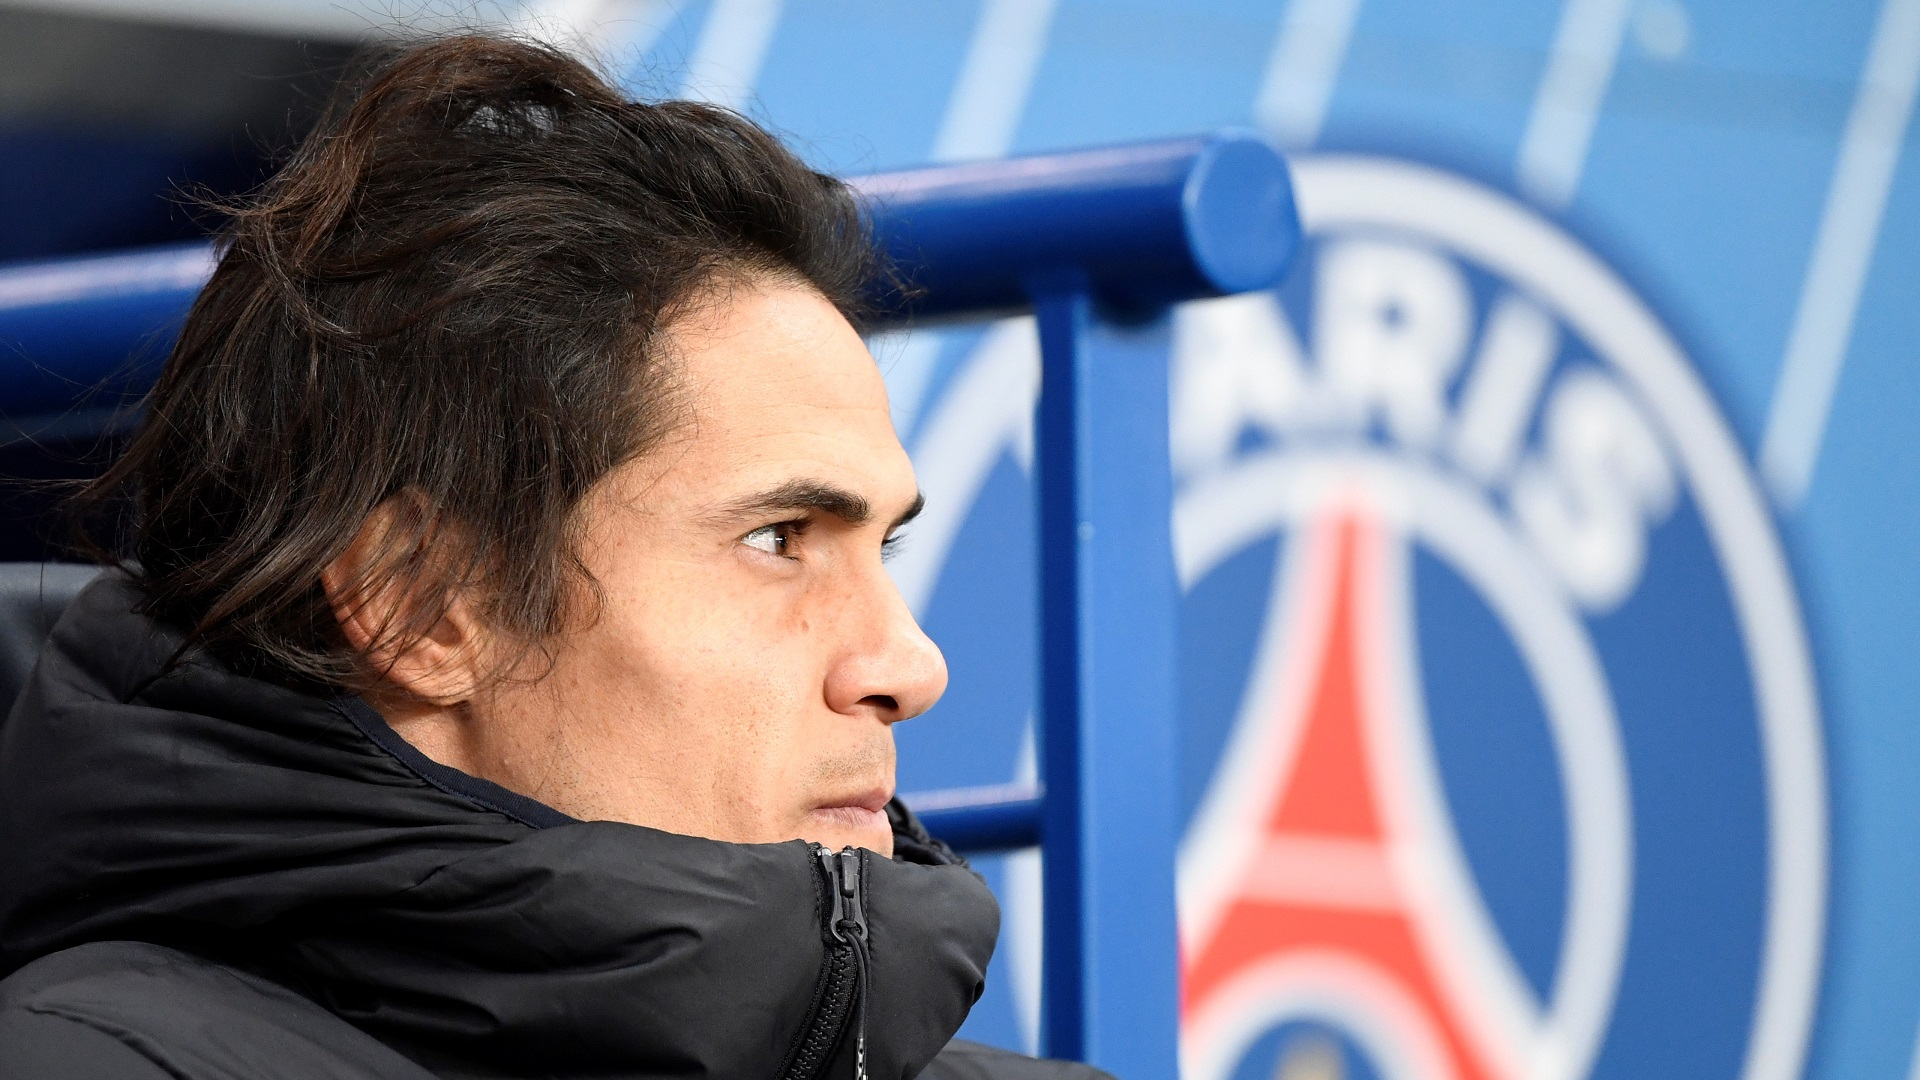 'PSG are not behaving well' - Cavani's mother says striker wants Atletico move